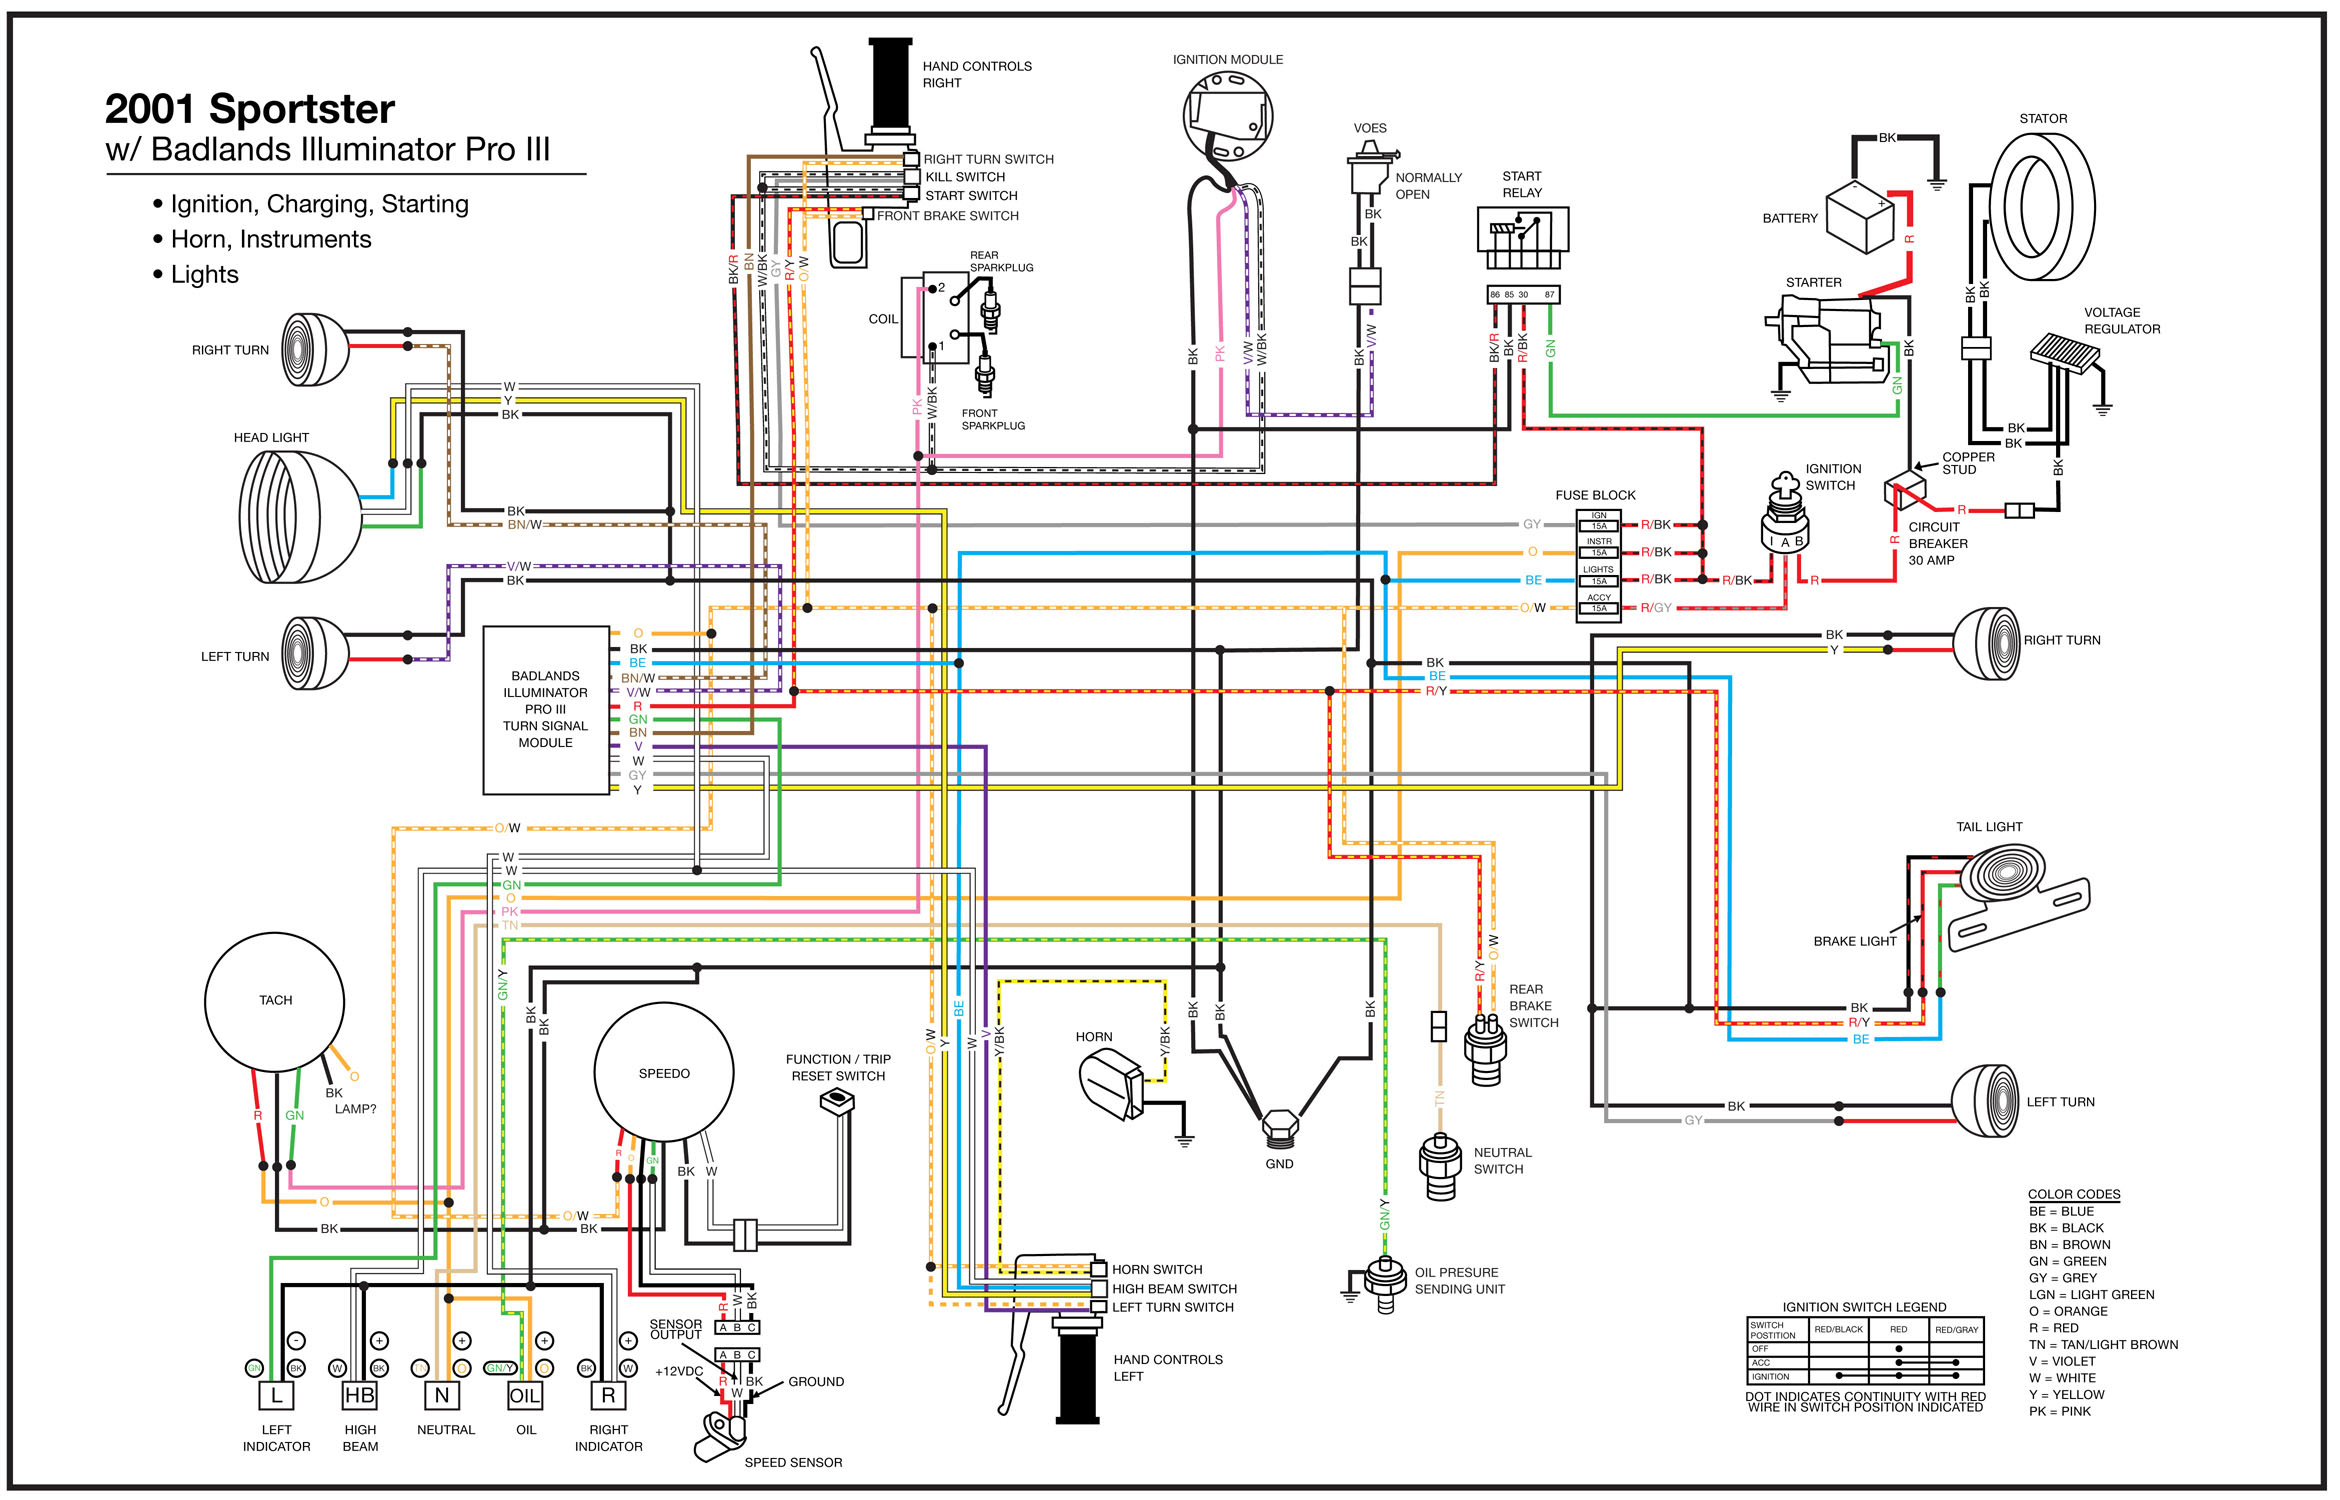 Harley Davidson 2014 Softail Wiring Diagram - Wiring Diagram Data - Harley Ignition Switch Wiring Diagram